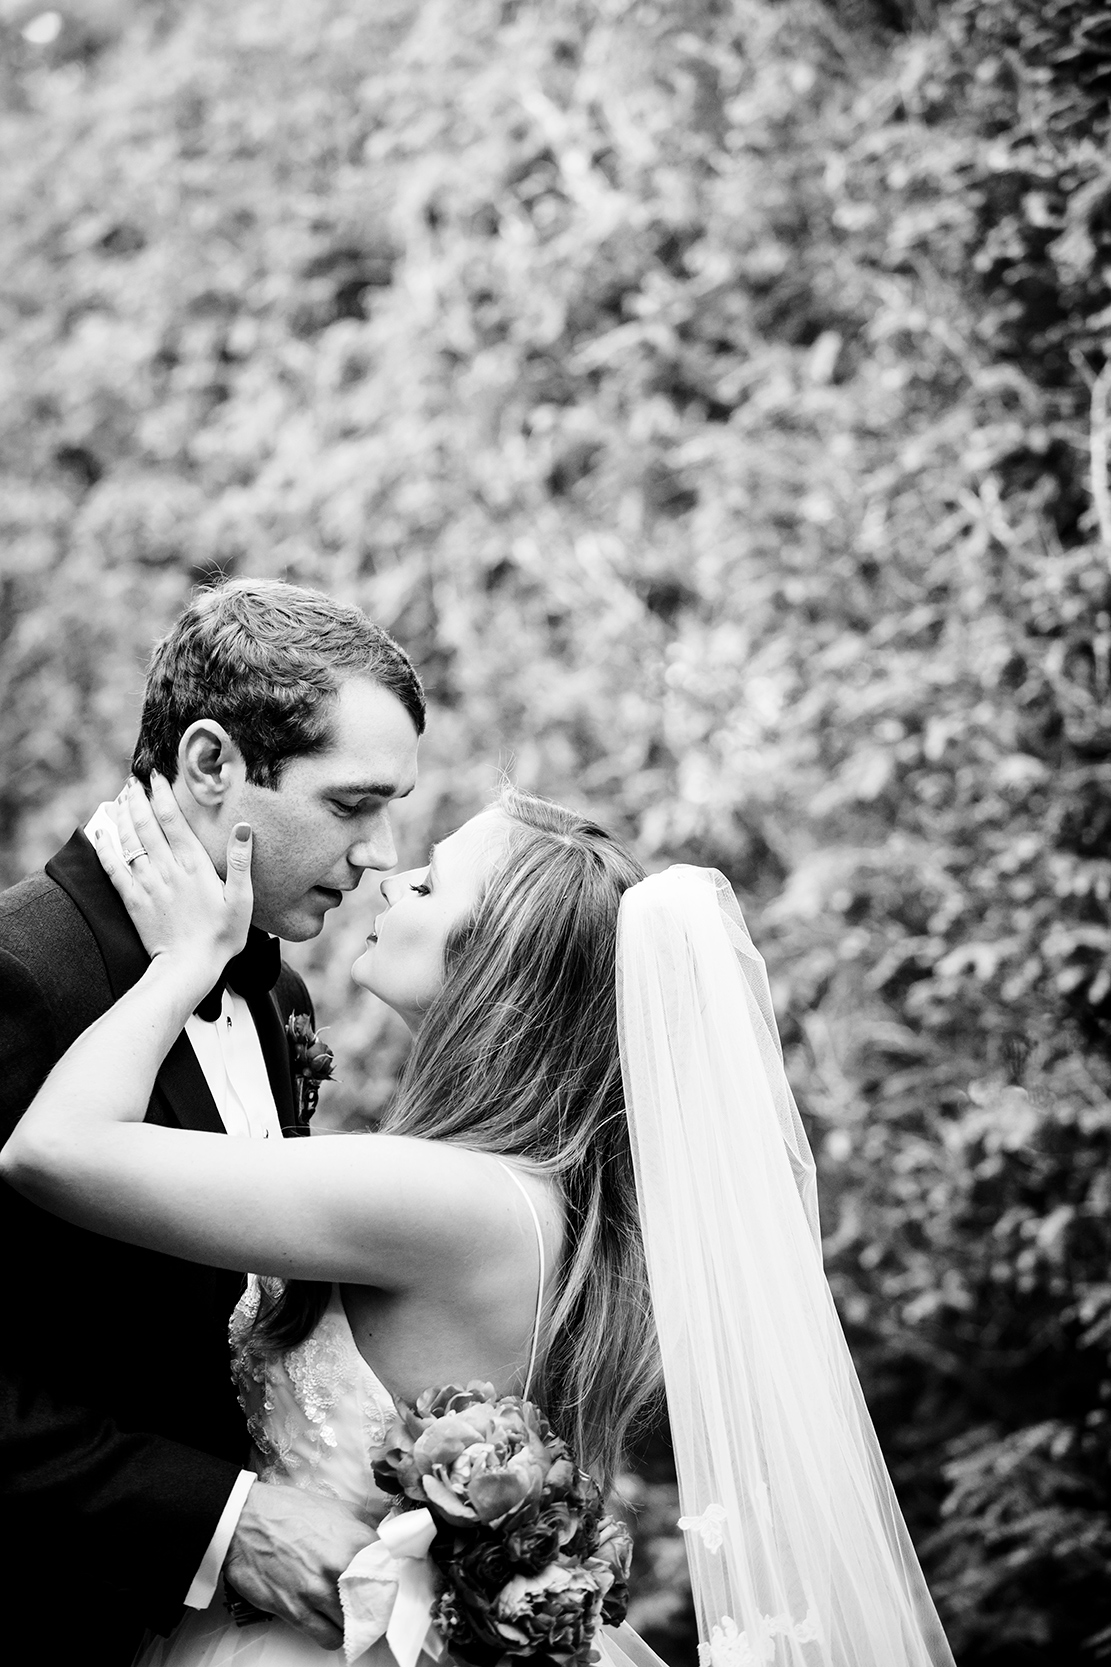 Wedding Preview  Caroline  Sam - Image Property of www.j-dphoto.com